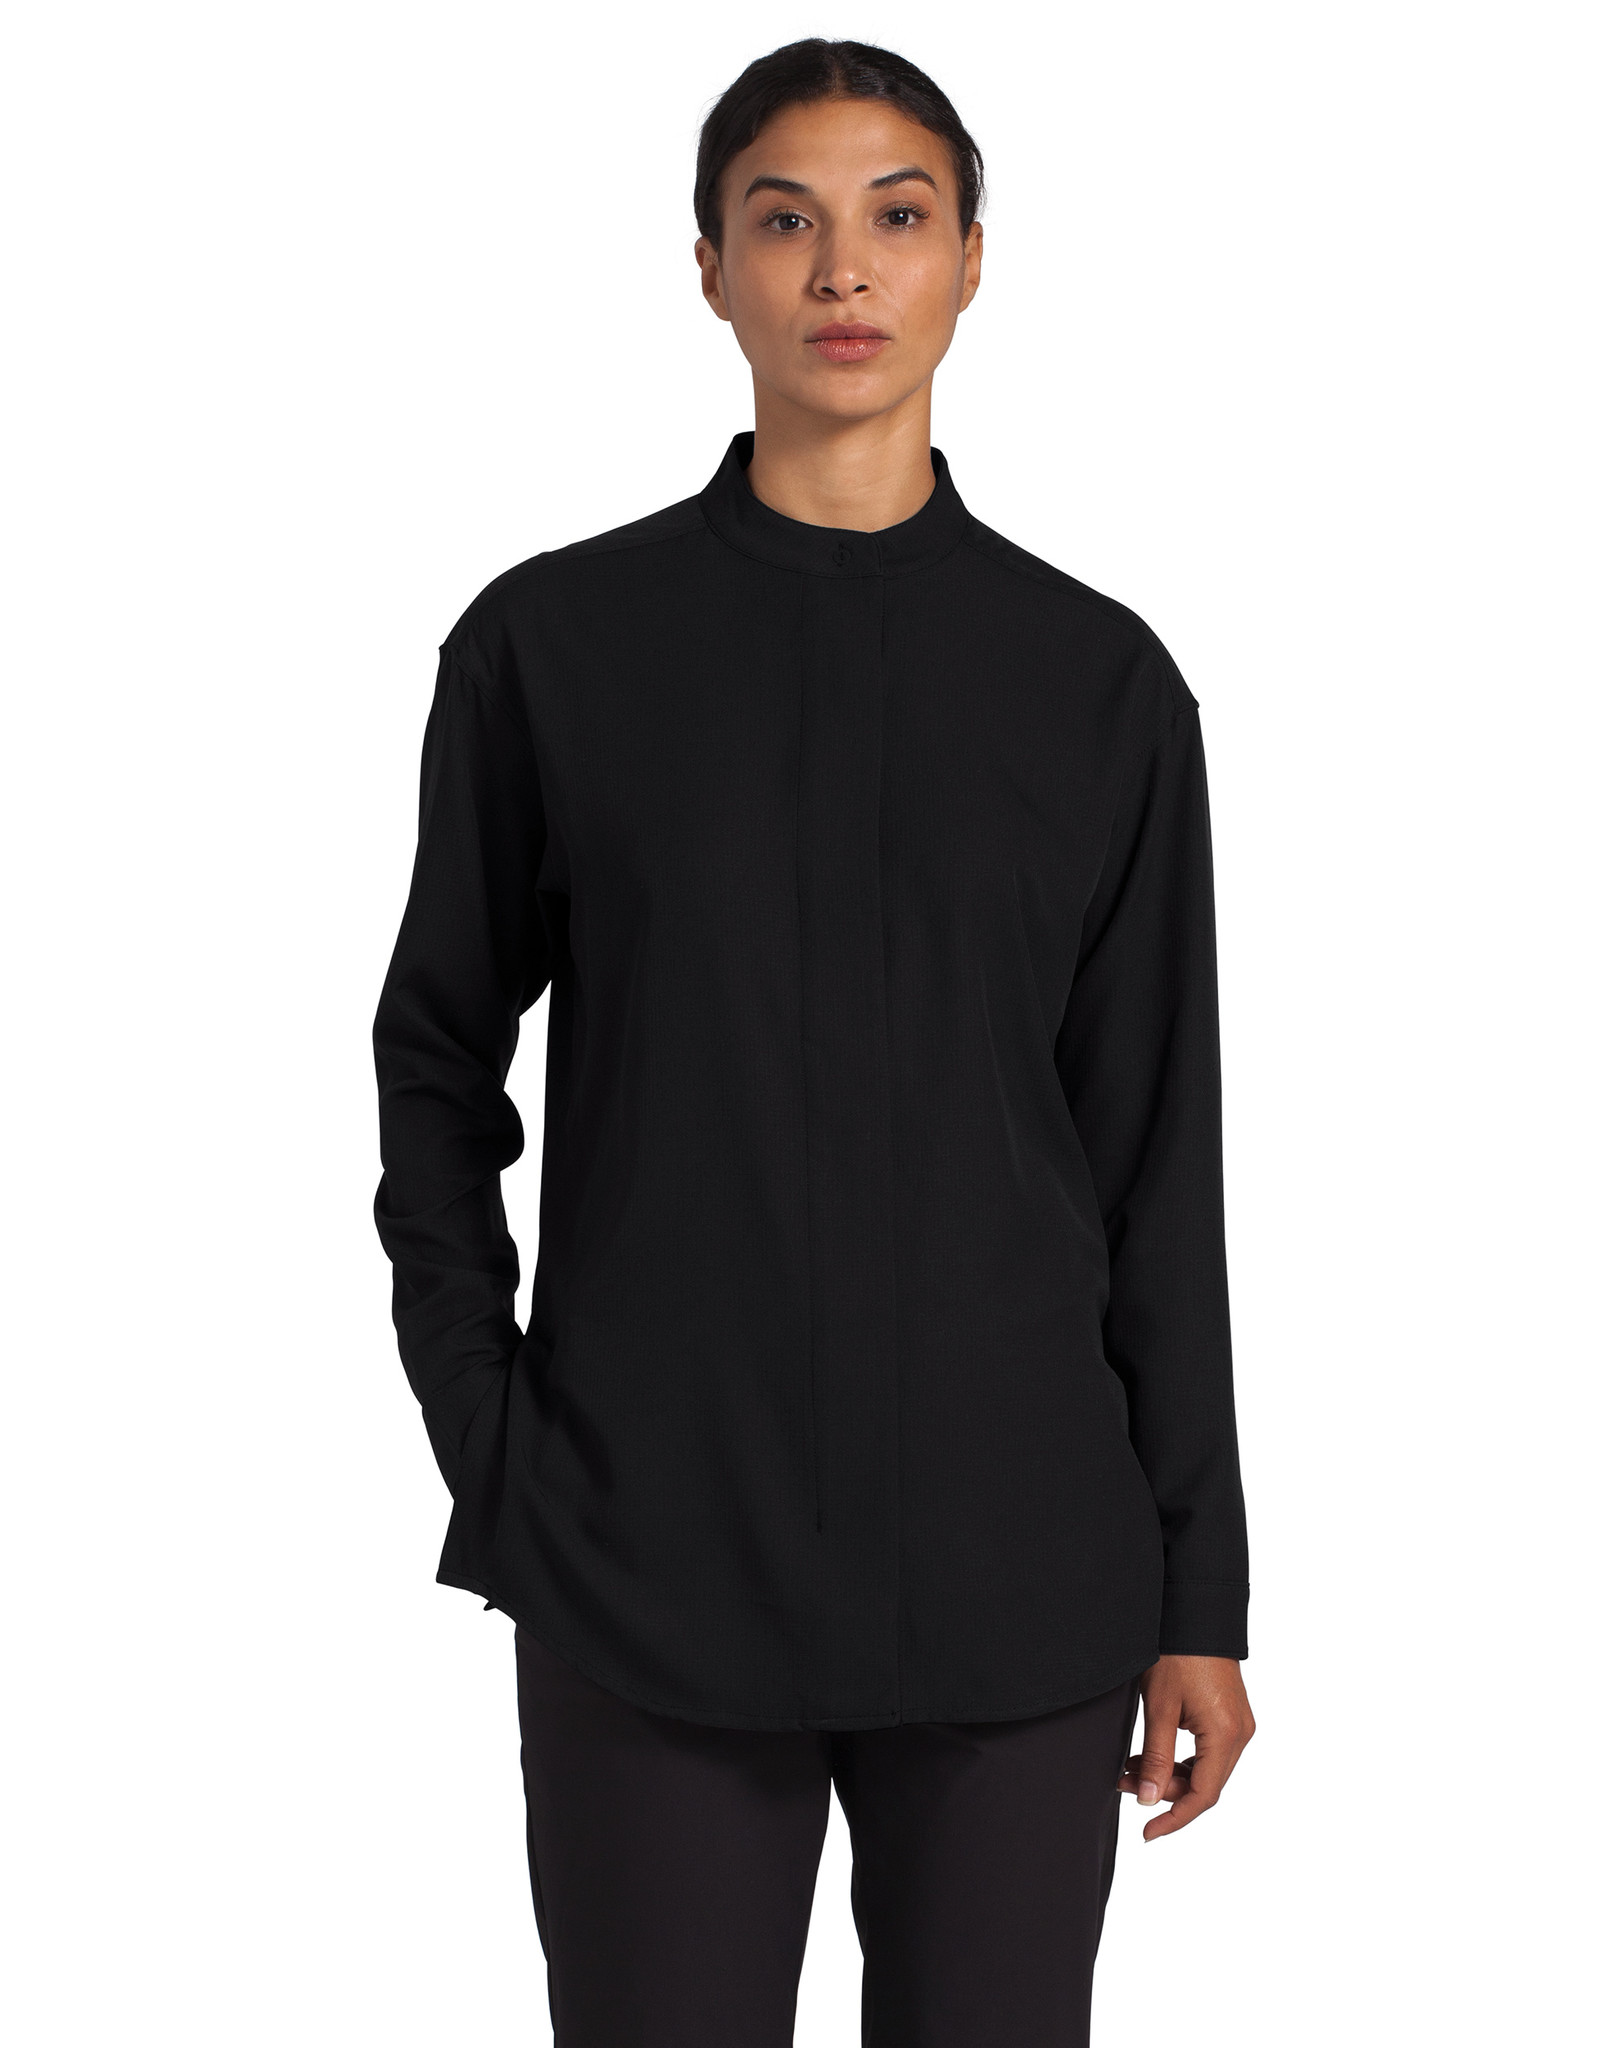 The North Face The North Face Women's Explore City BD L/S Shirt - S2020